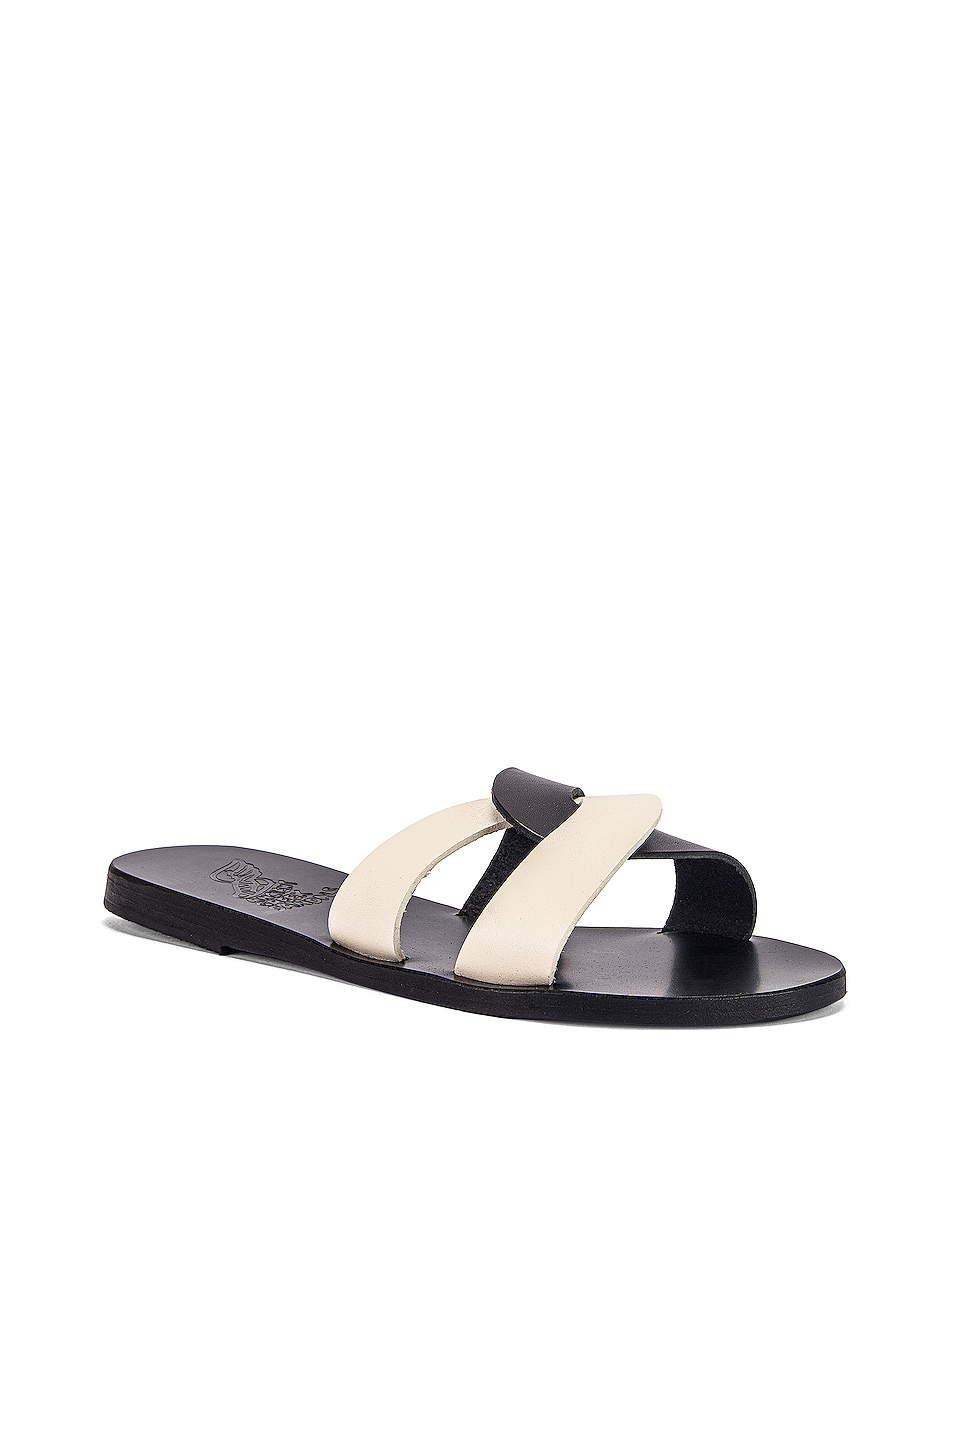 Image 2 of Ancient Greek Sandals Desmos Sandals in Black & Off White